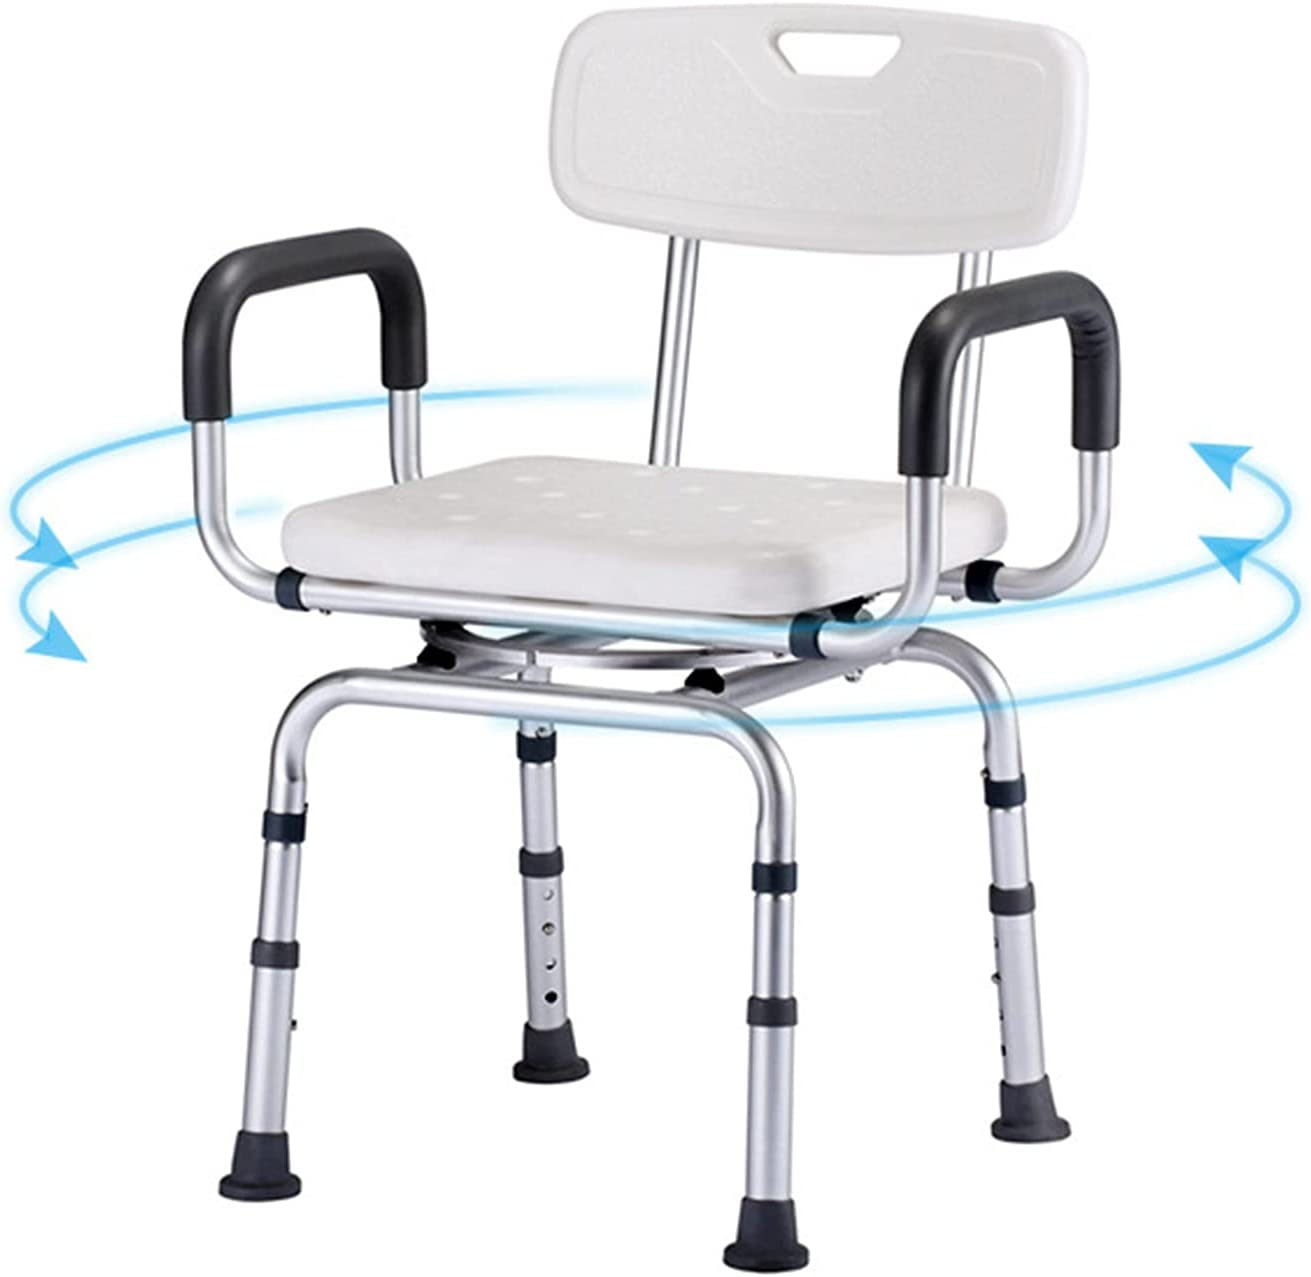 ZPTAT Shower Chair for Elderly Heavy High quality new Duty Courier shipping free shipping H Seat Swivels